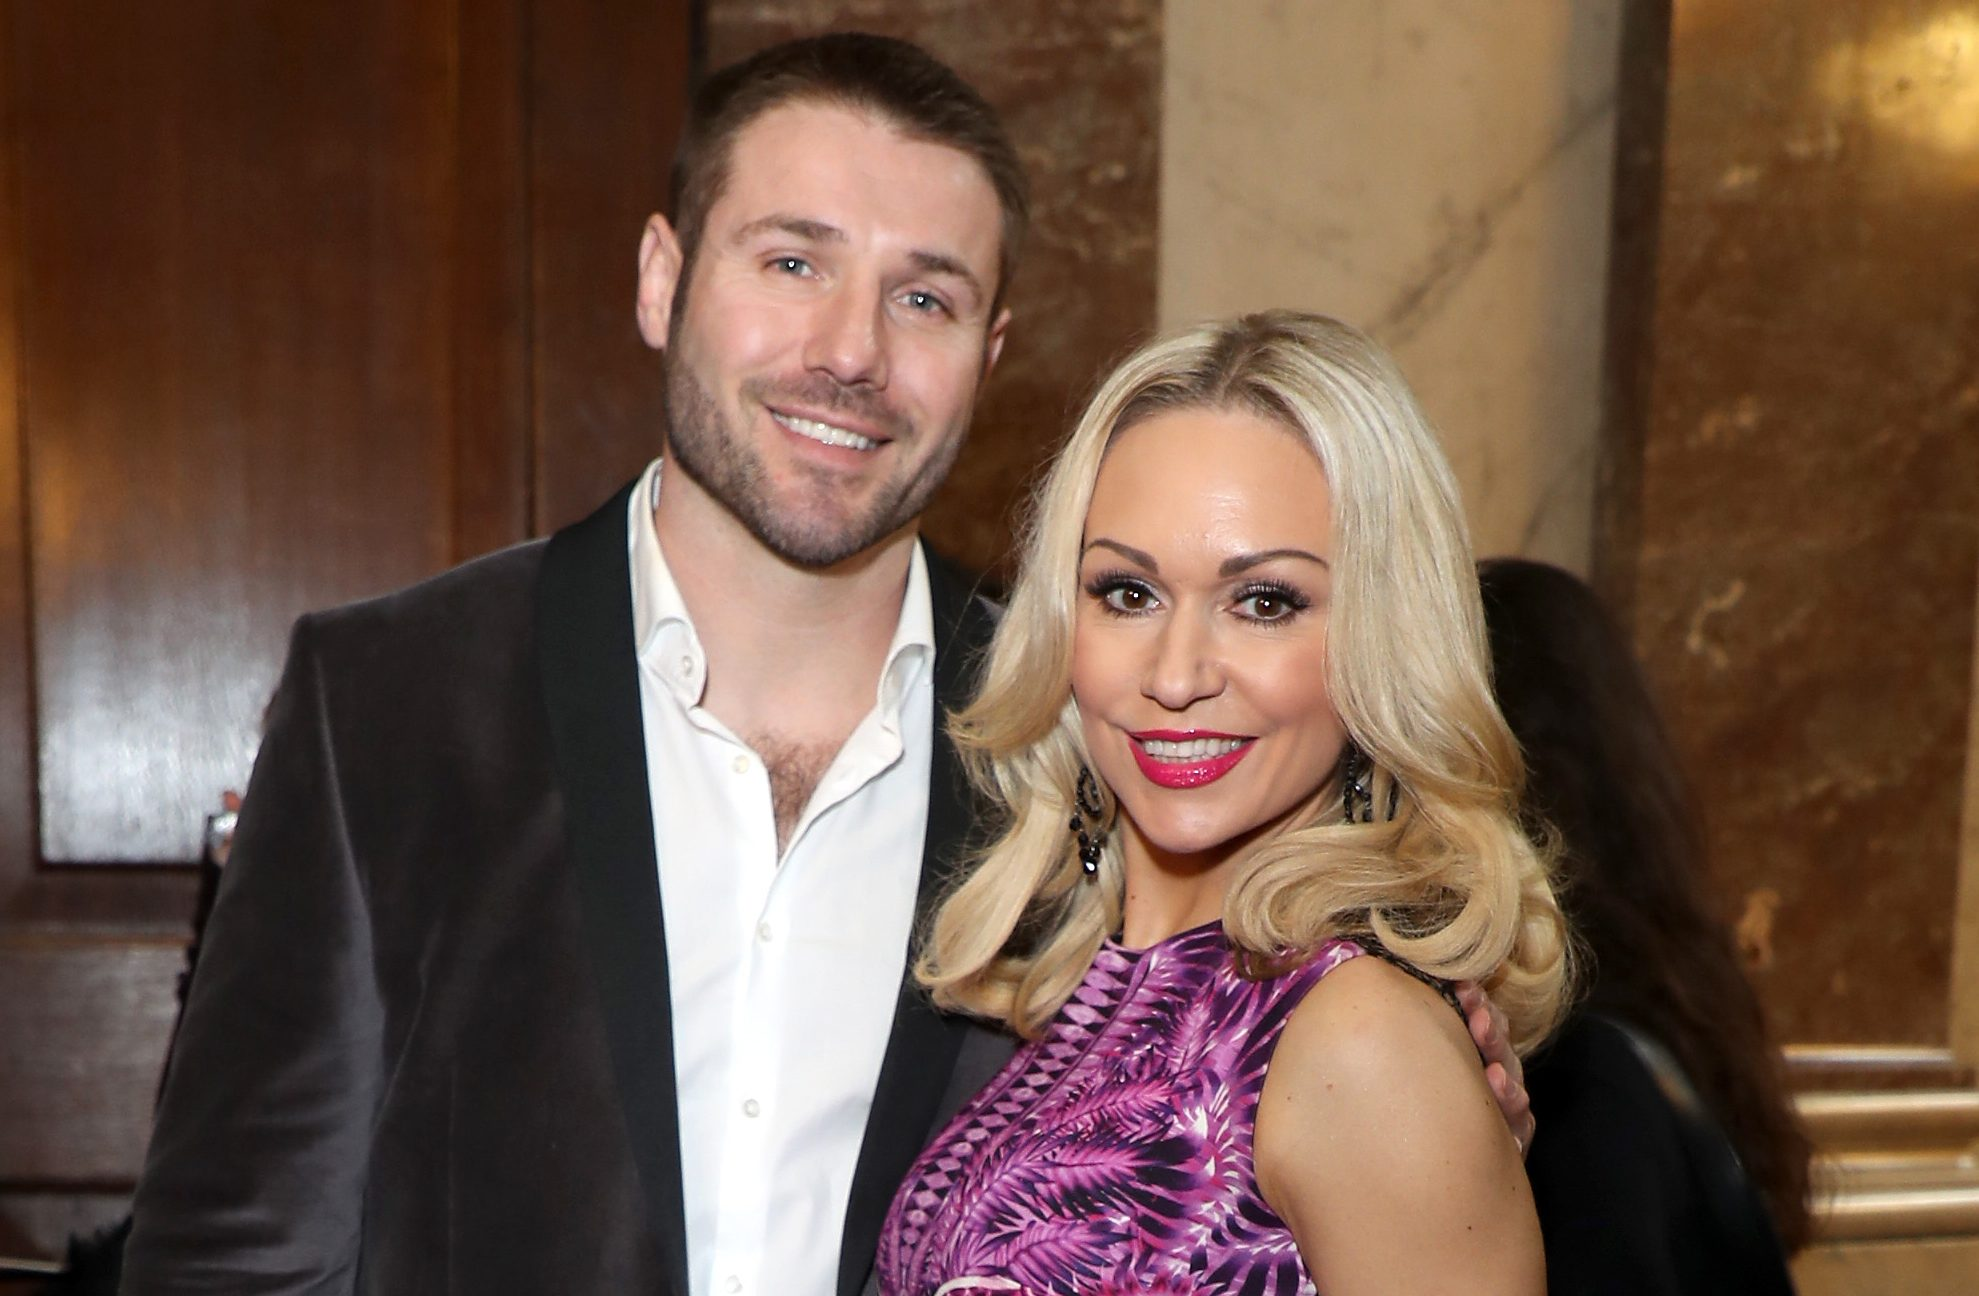 LONDON, ENGLAND - FEBRUARY 18: Kristina Rihanoff (R) and Ben Cohen attend the Julien MacDonald show during the London Fashion Week February 2017 collections on February 18, 2017 in London, England. (Photo by Mike Marsland/WireImage)